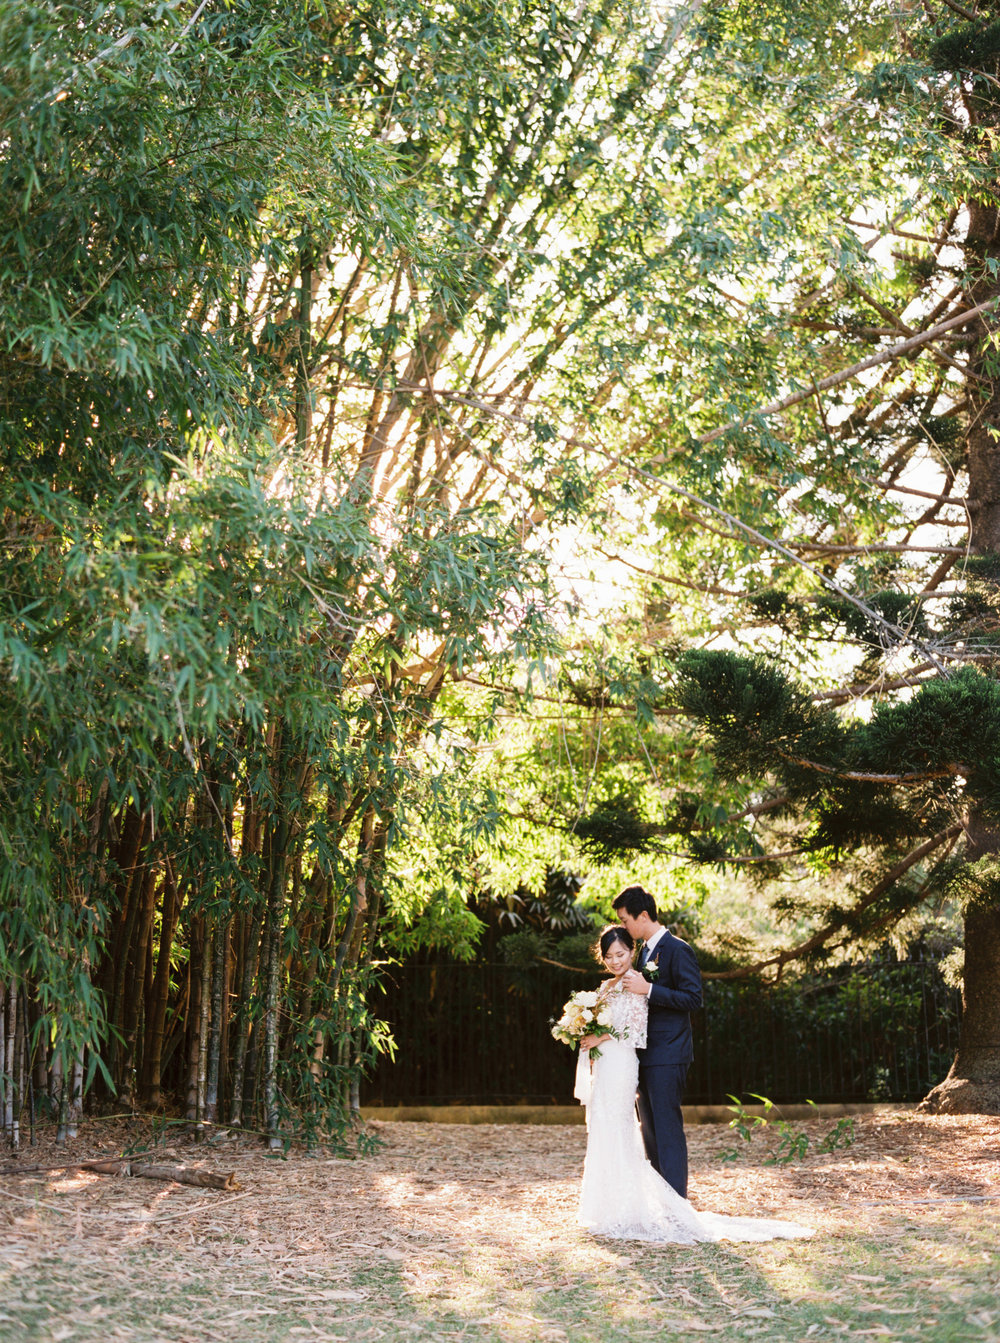 00022- Fine Art Film Australia Destination Sydney Wedding Photographer Sheri McMahon.jpg